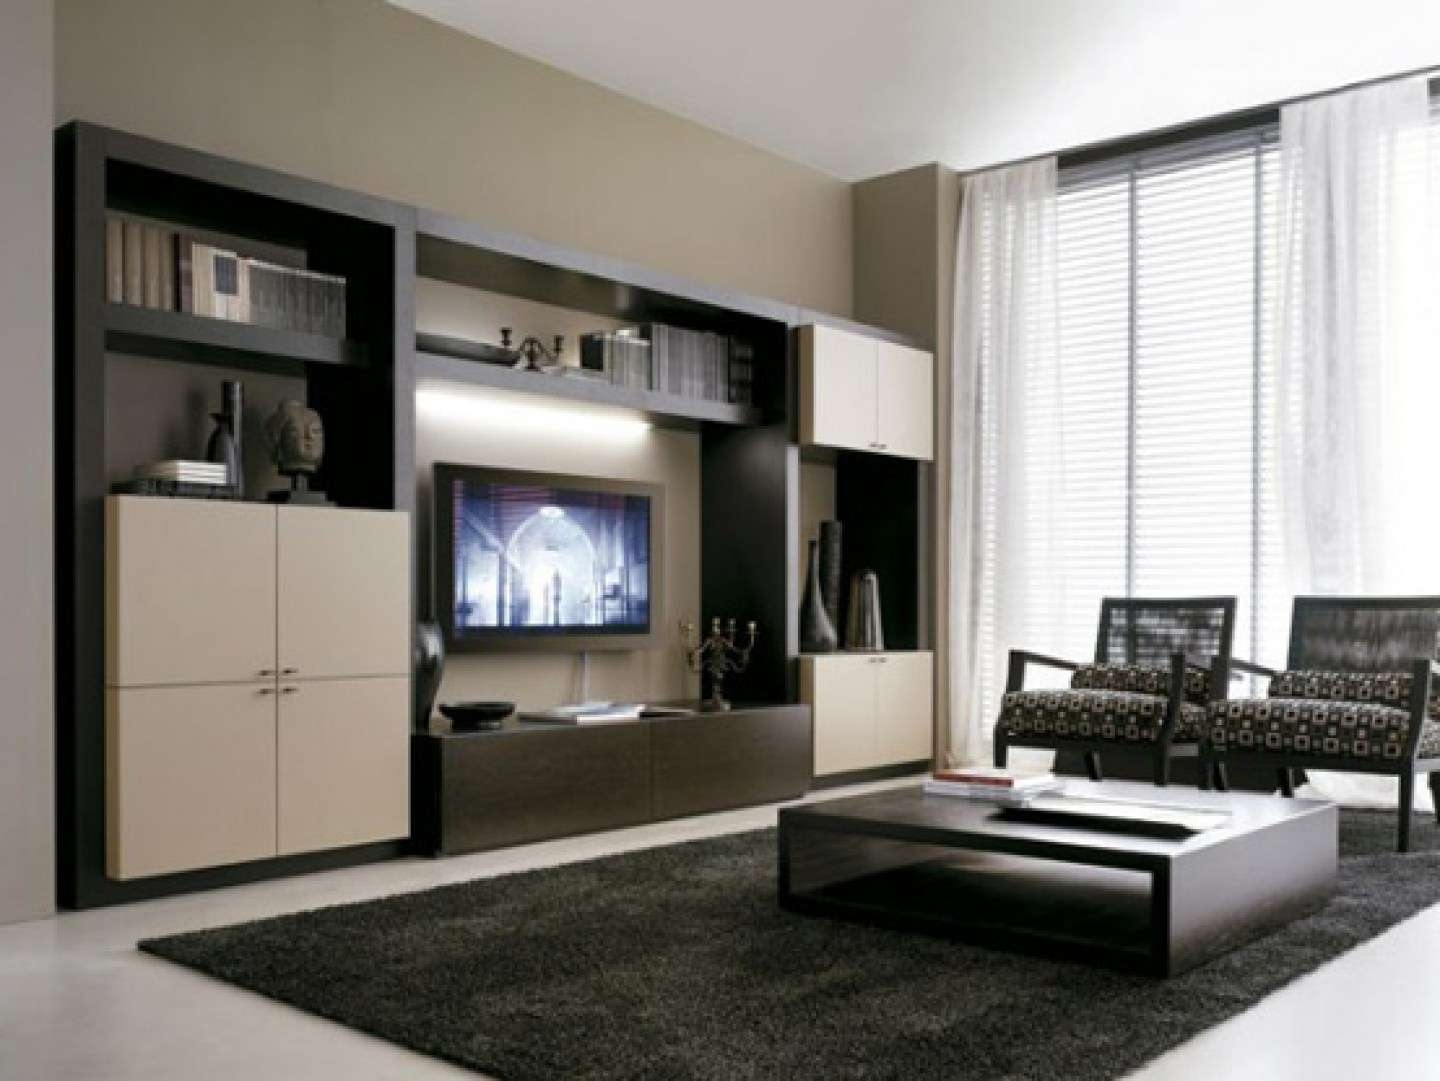 20 Modern Tv Unit Design Ideas For Bedroom Living Room With For Stylish Tv Cabinets (View 1 of 20)